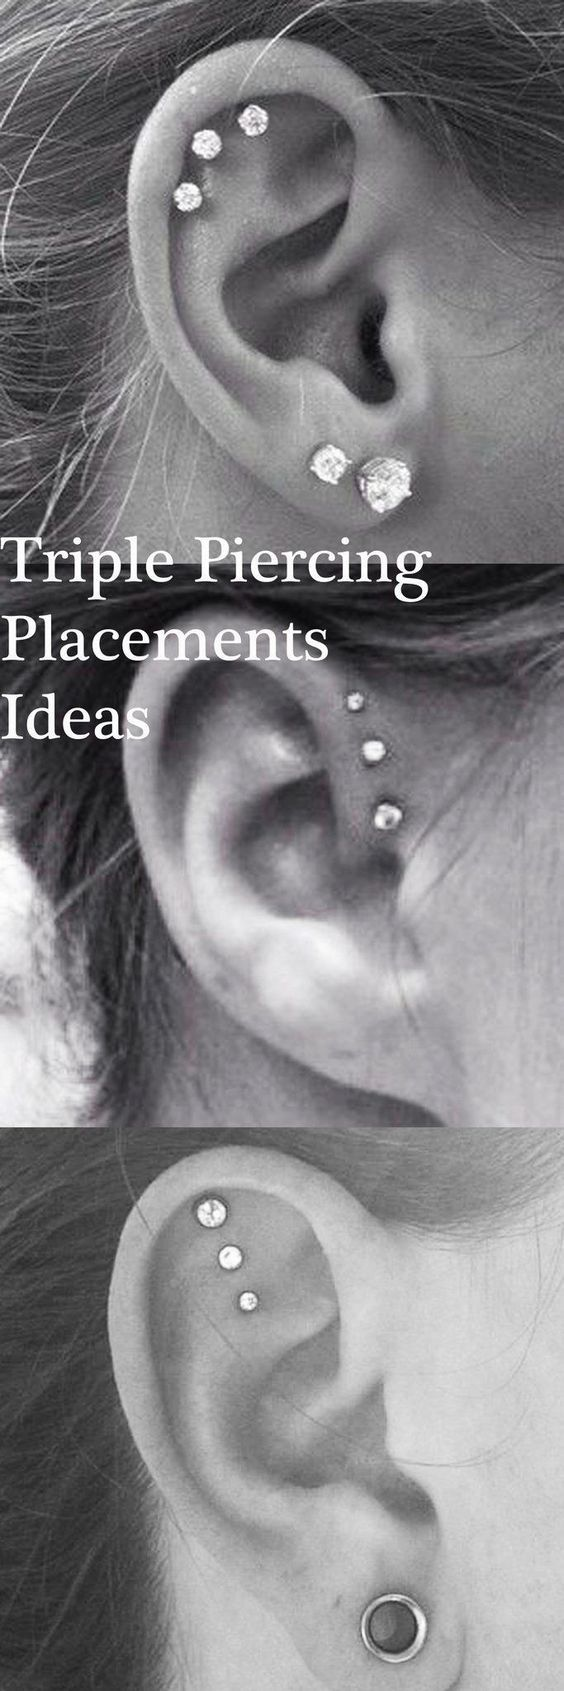 Cute Ear Piercing Id Cute Ear Piercing Ideas at MyBodiArt.com - Triple Forward Helix Earrings - Triple Cartilage Constellation Studs